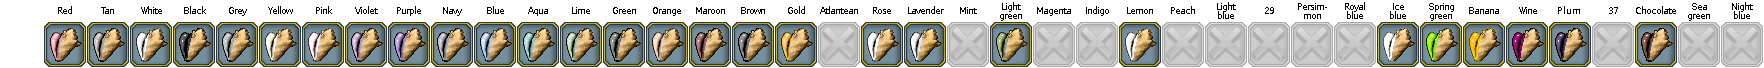 Colors-trinket-Conch shell.png